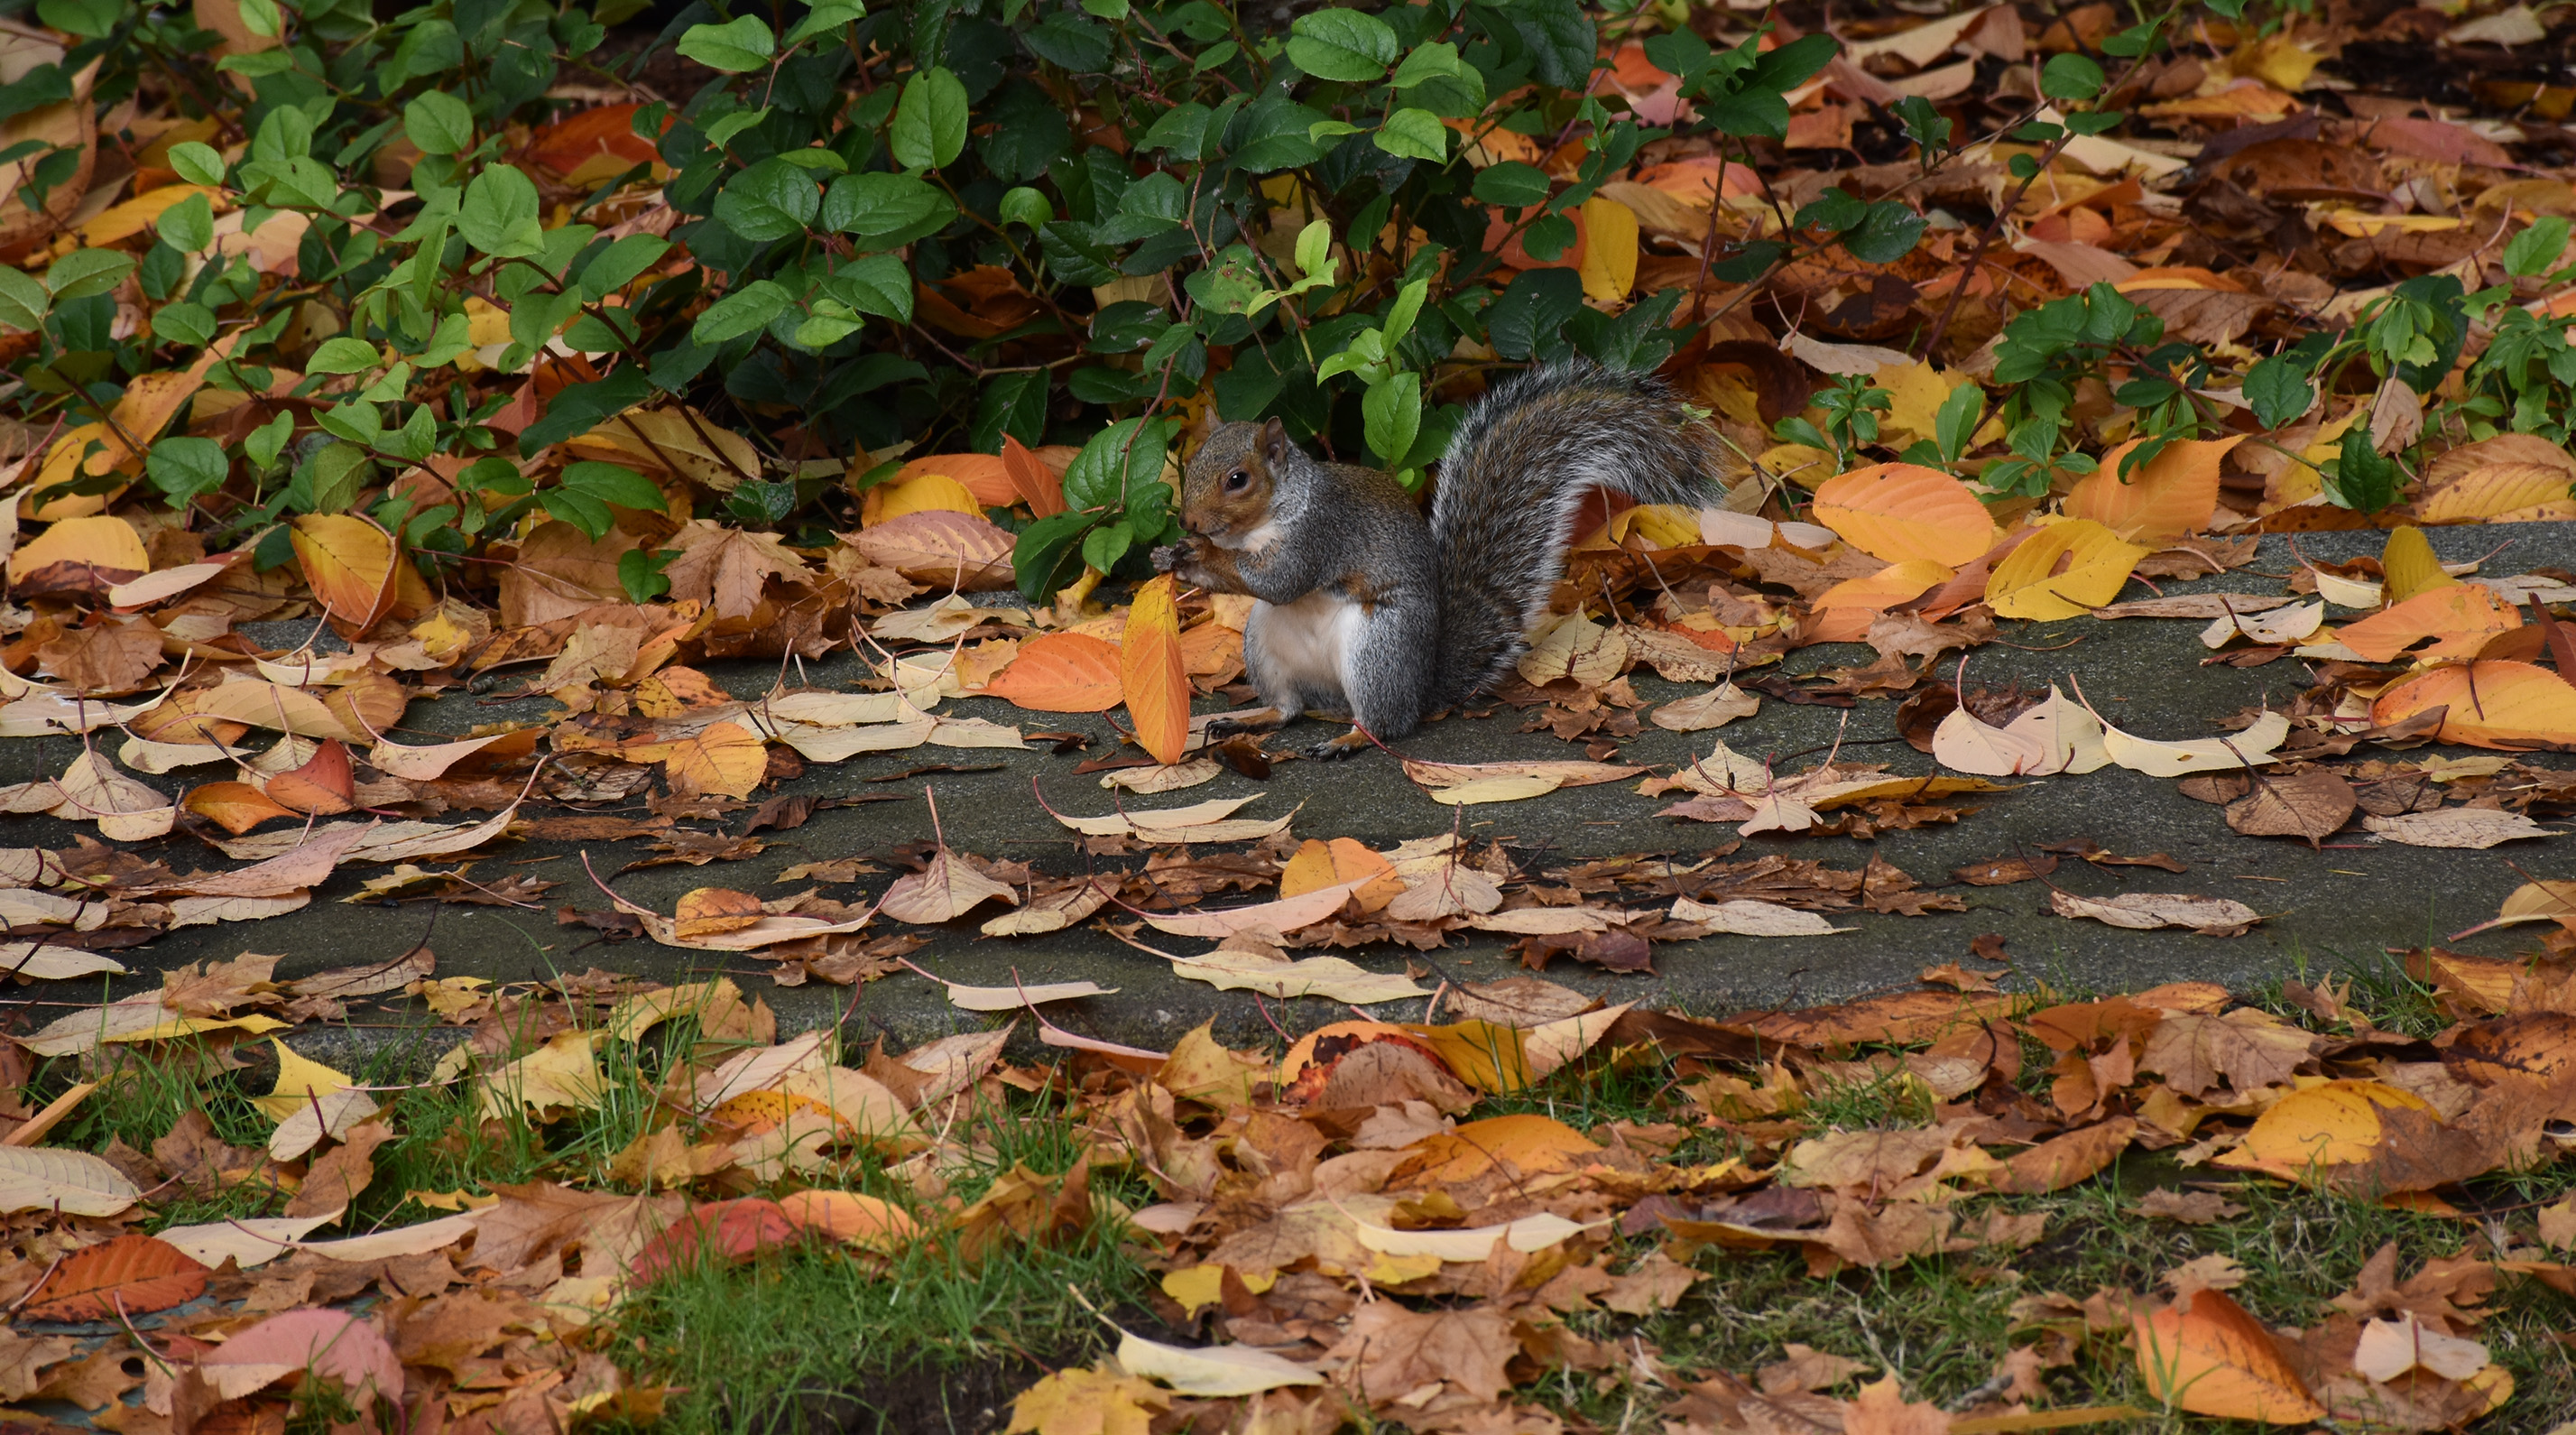 Squirrel eating among fall leaves